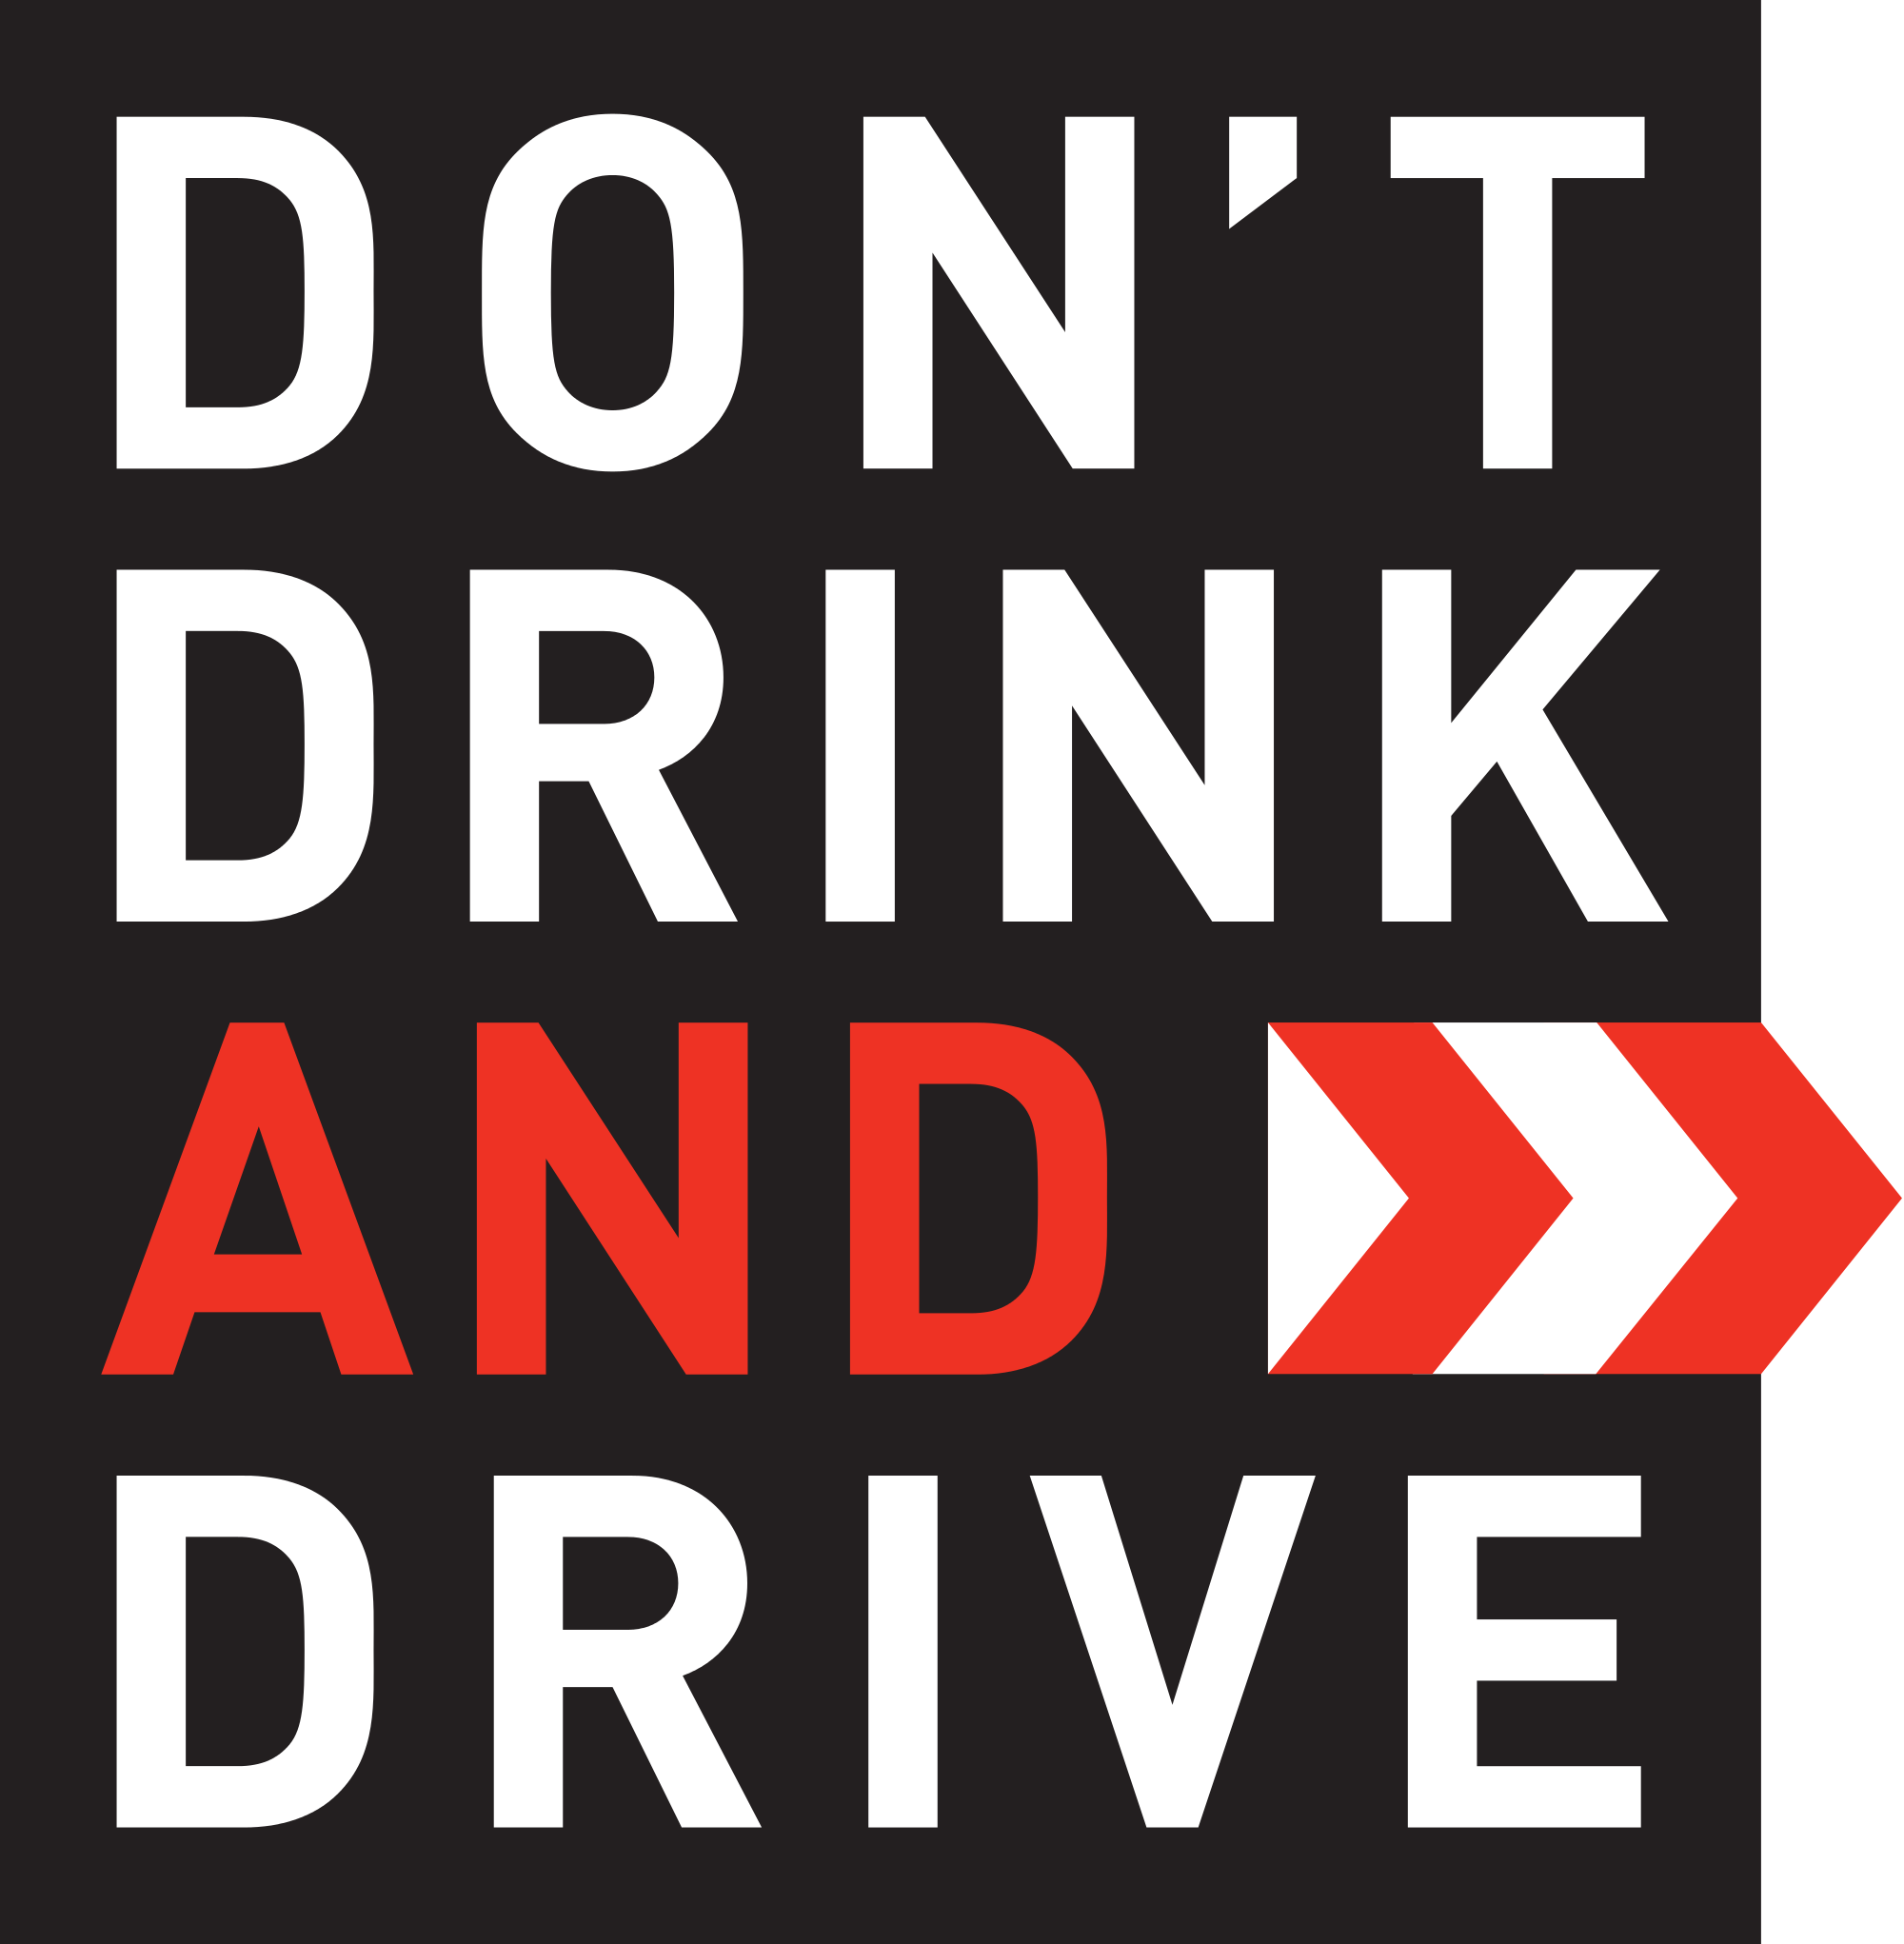 """Lower Drink Drive Limit"" say Safety Campaigners"